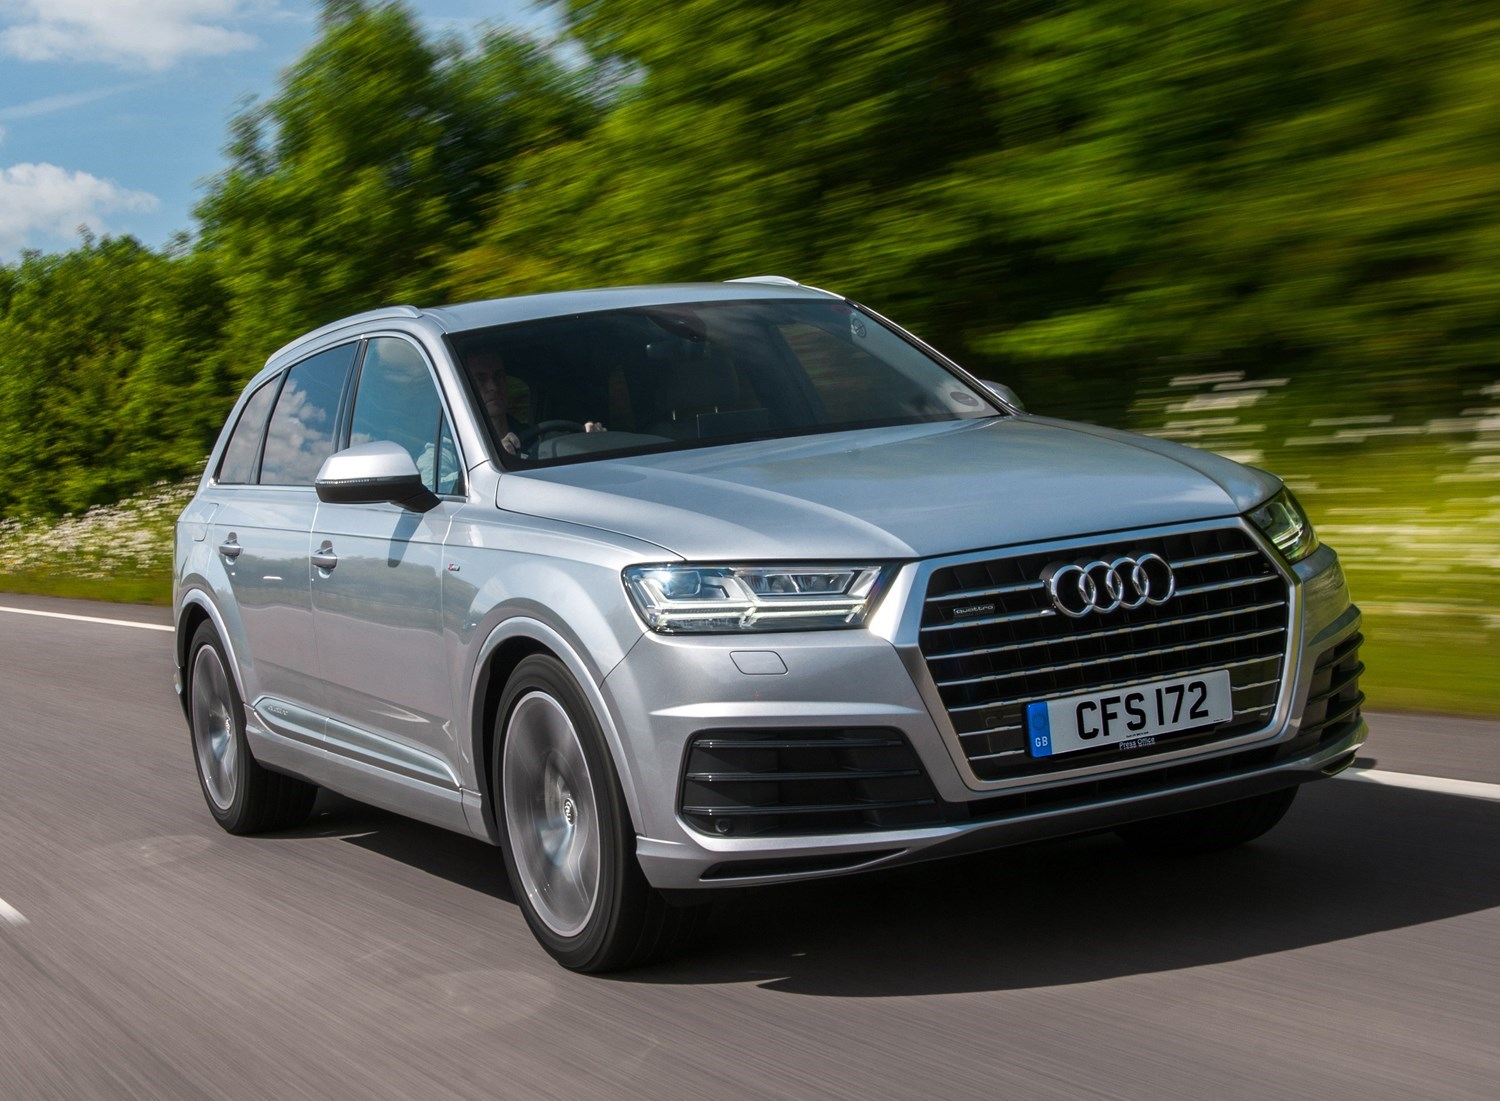 Cars for twins and a toddler - Audi Q7